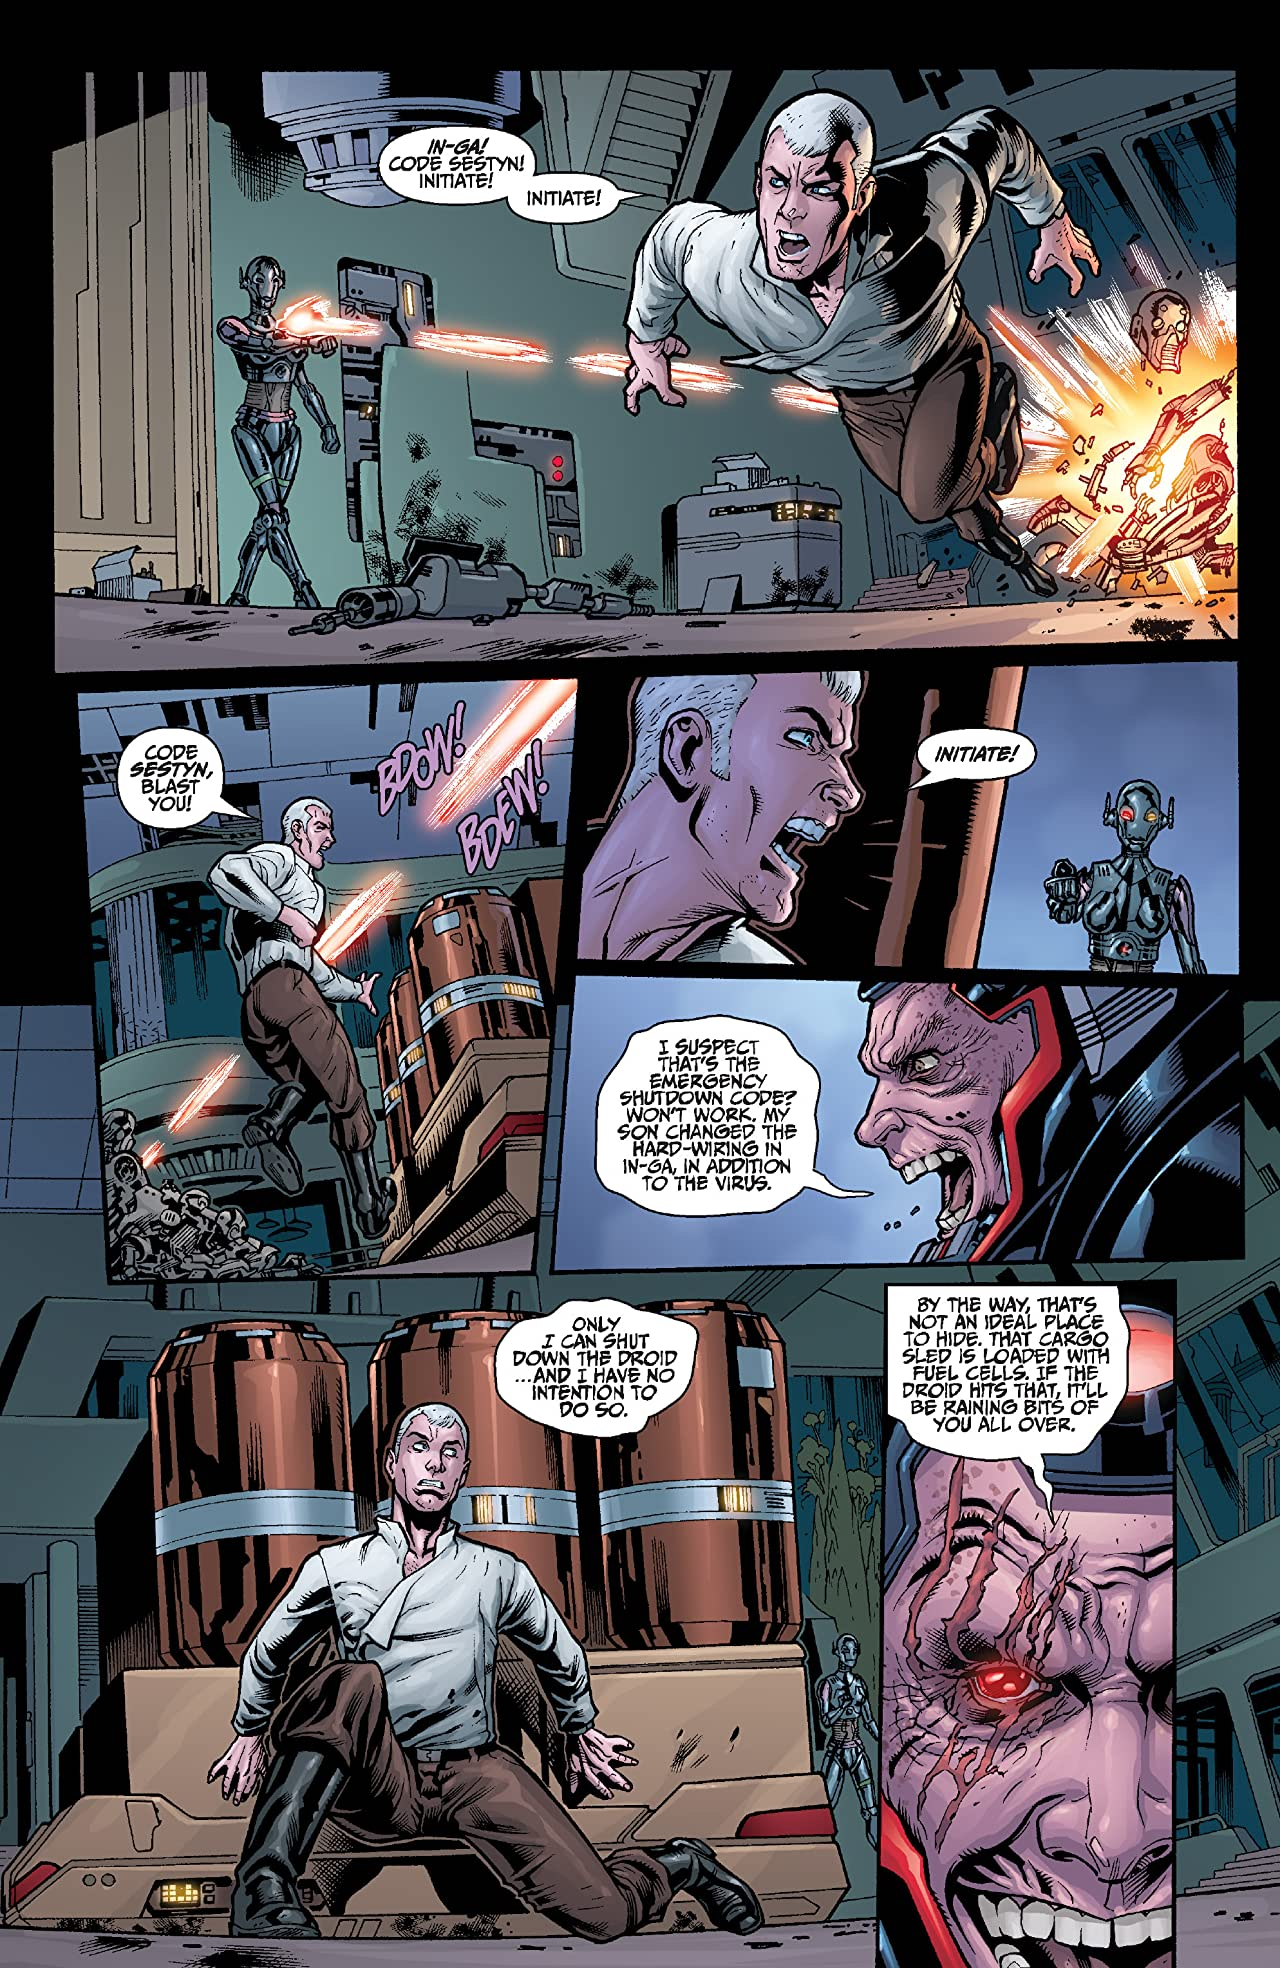 Star Wars: Agent of the Empire - Iron Eclipse (2011-2012) #5 (of 5)